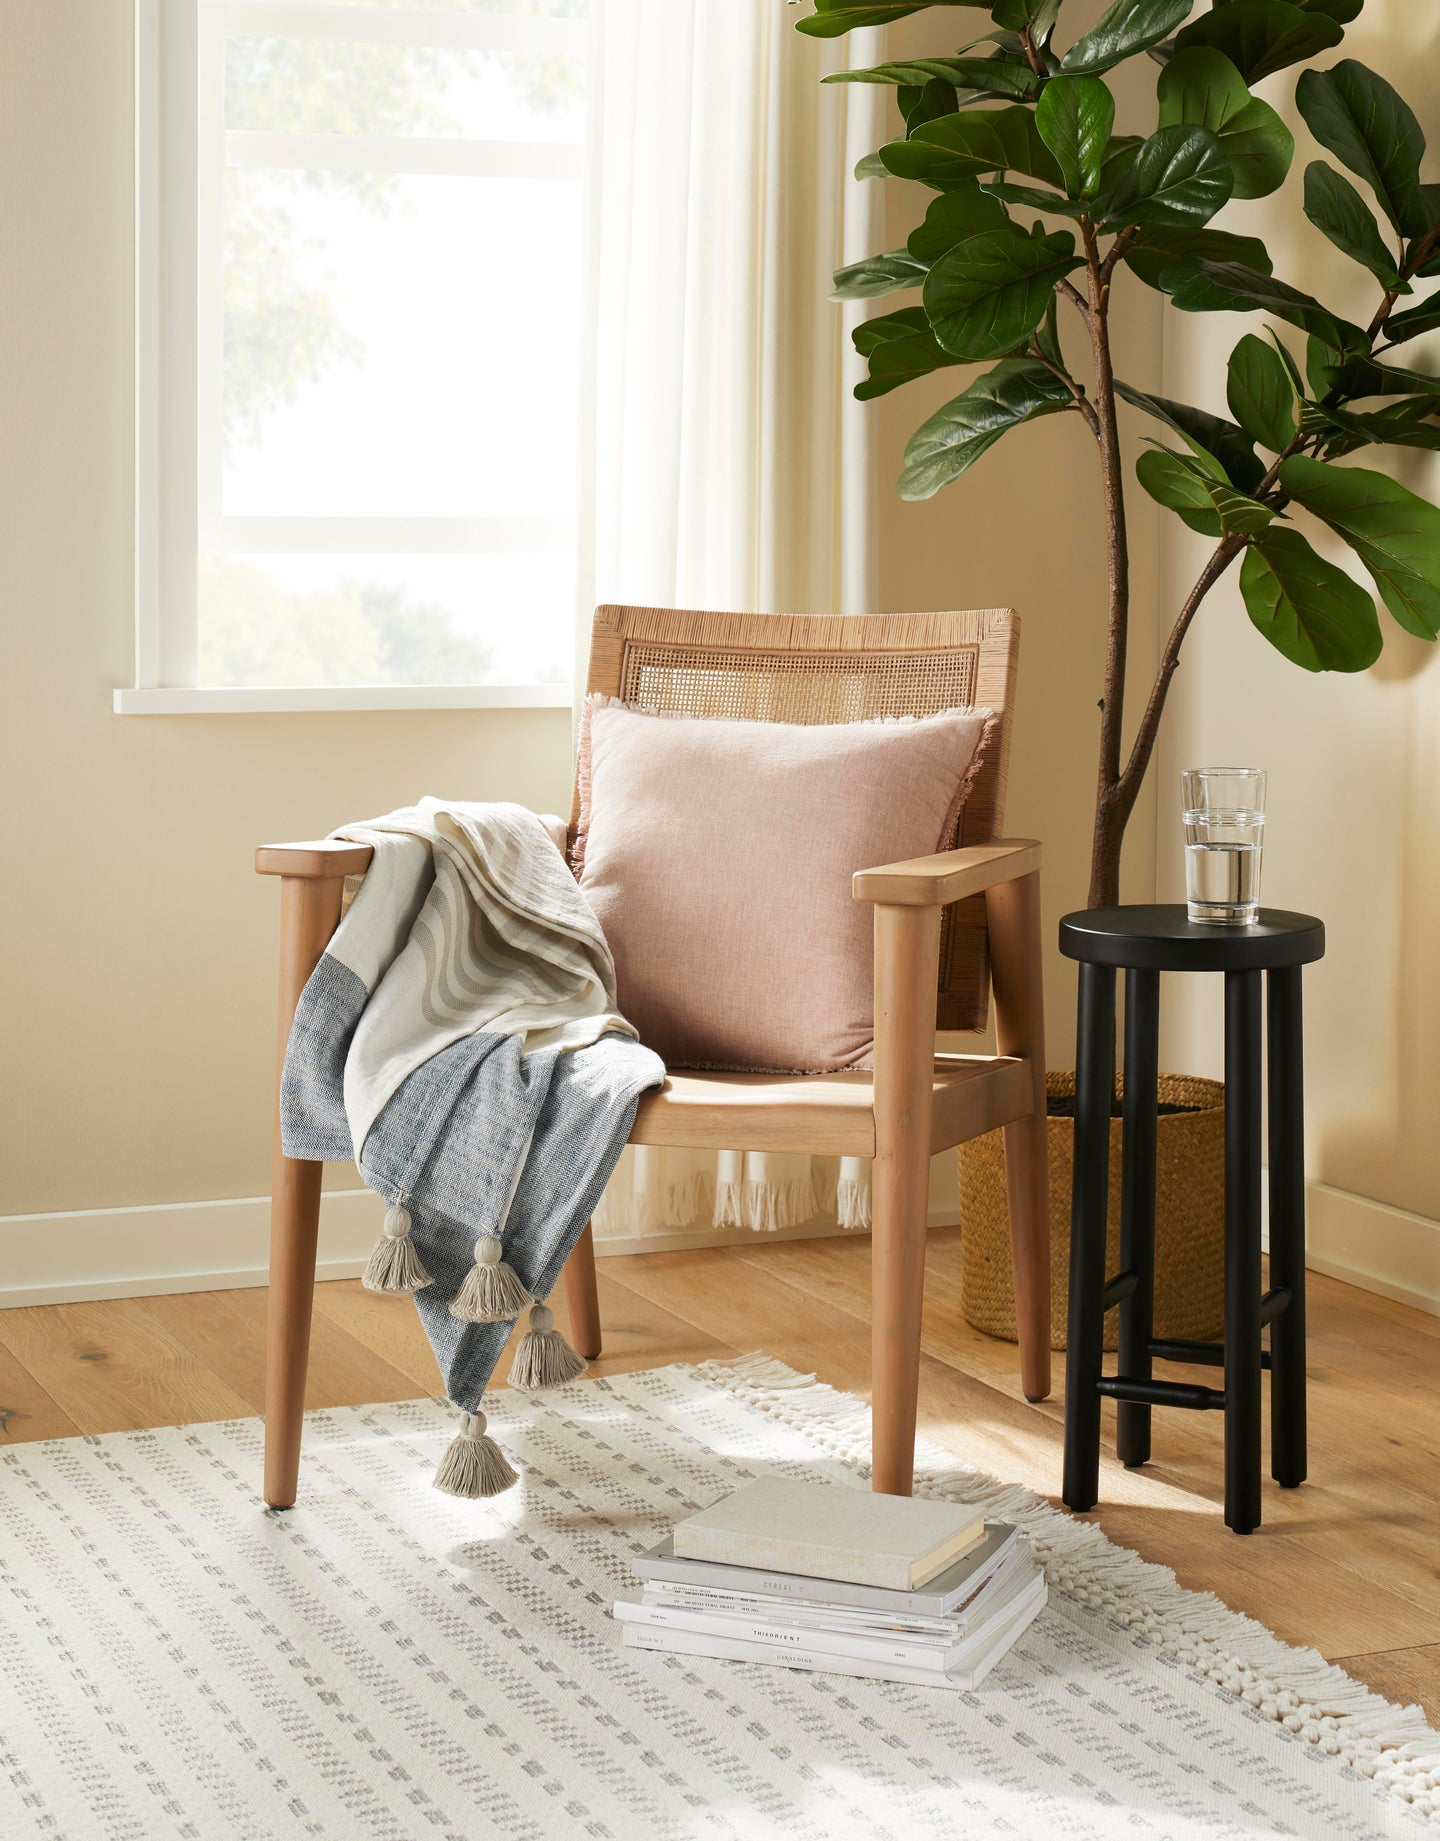 chair with plant behind it